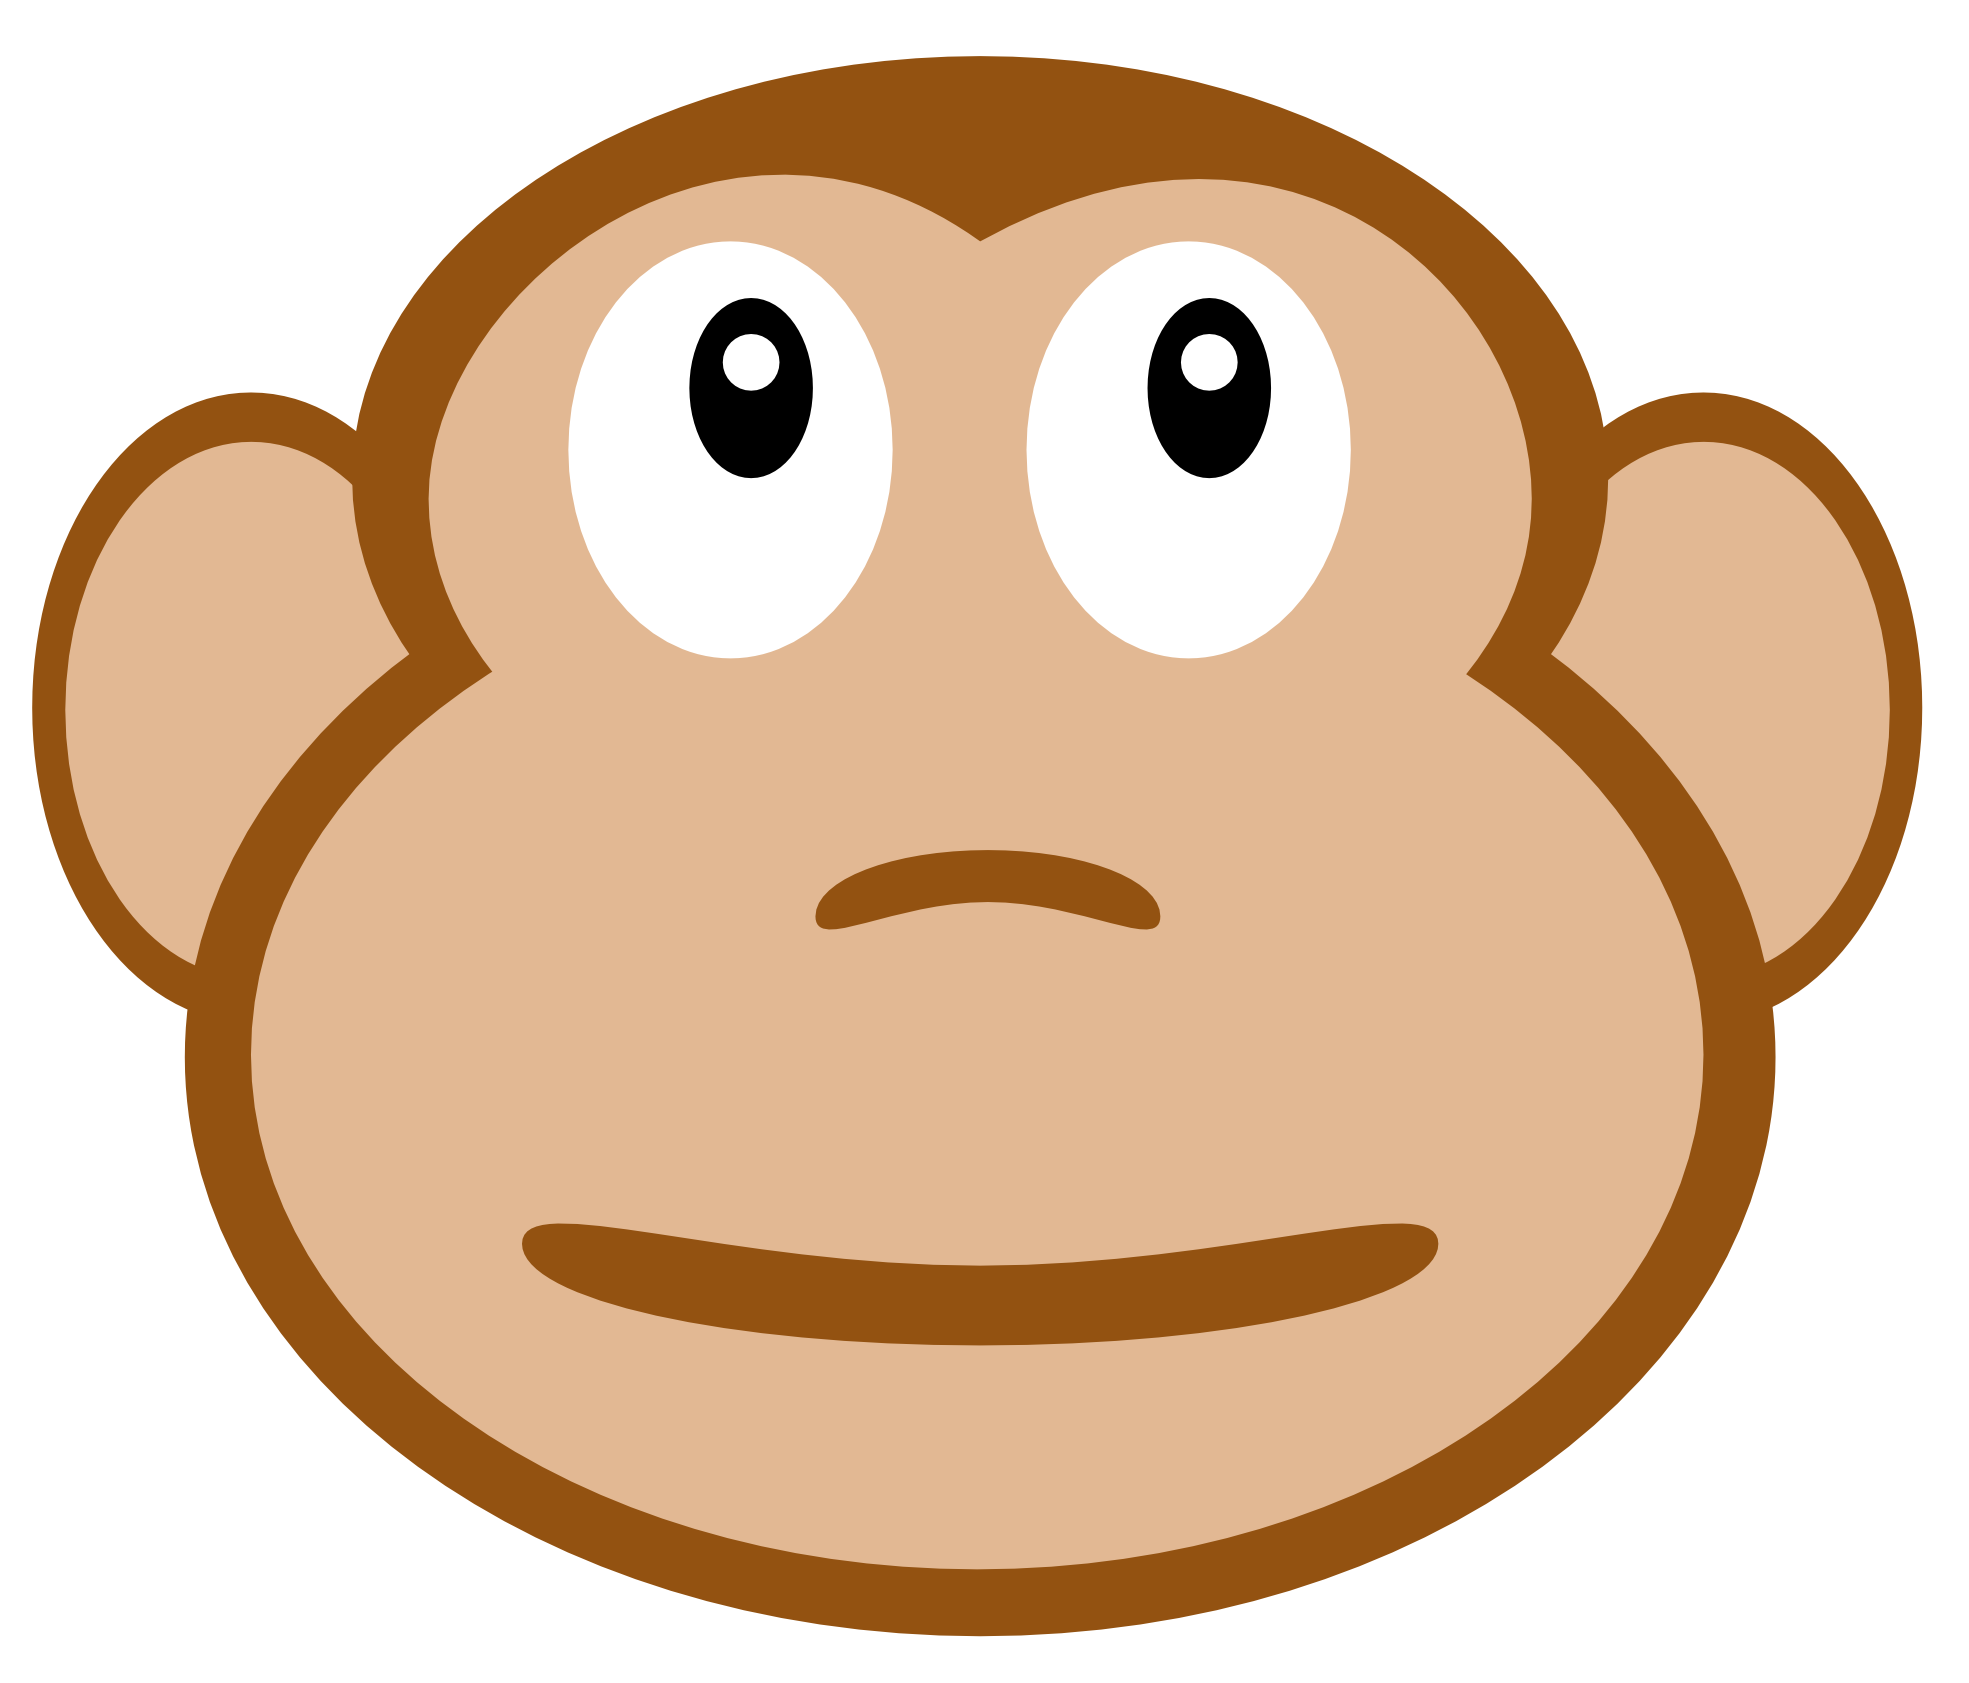 Monkey Face Drawing - Clipart library-Monkey Face Drawing - Clipart library-4